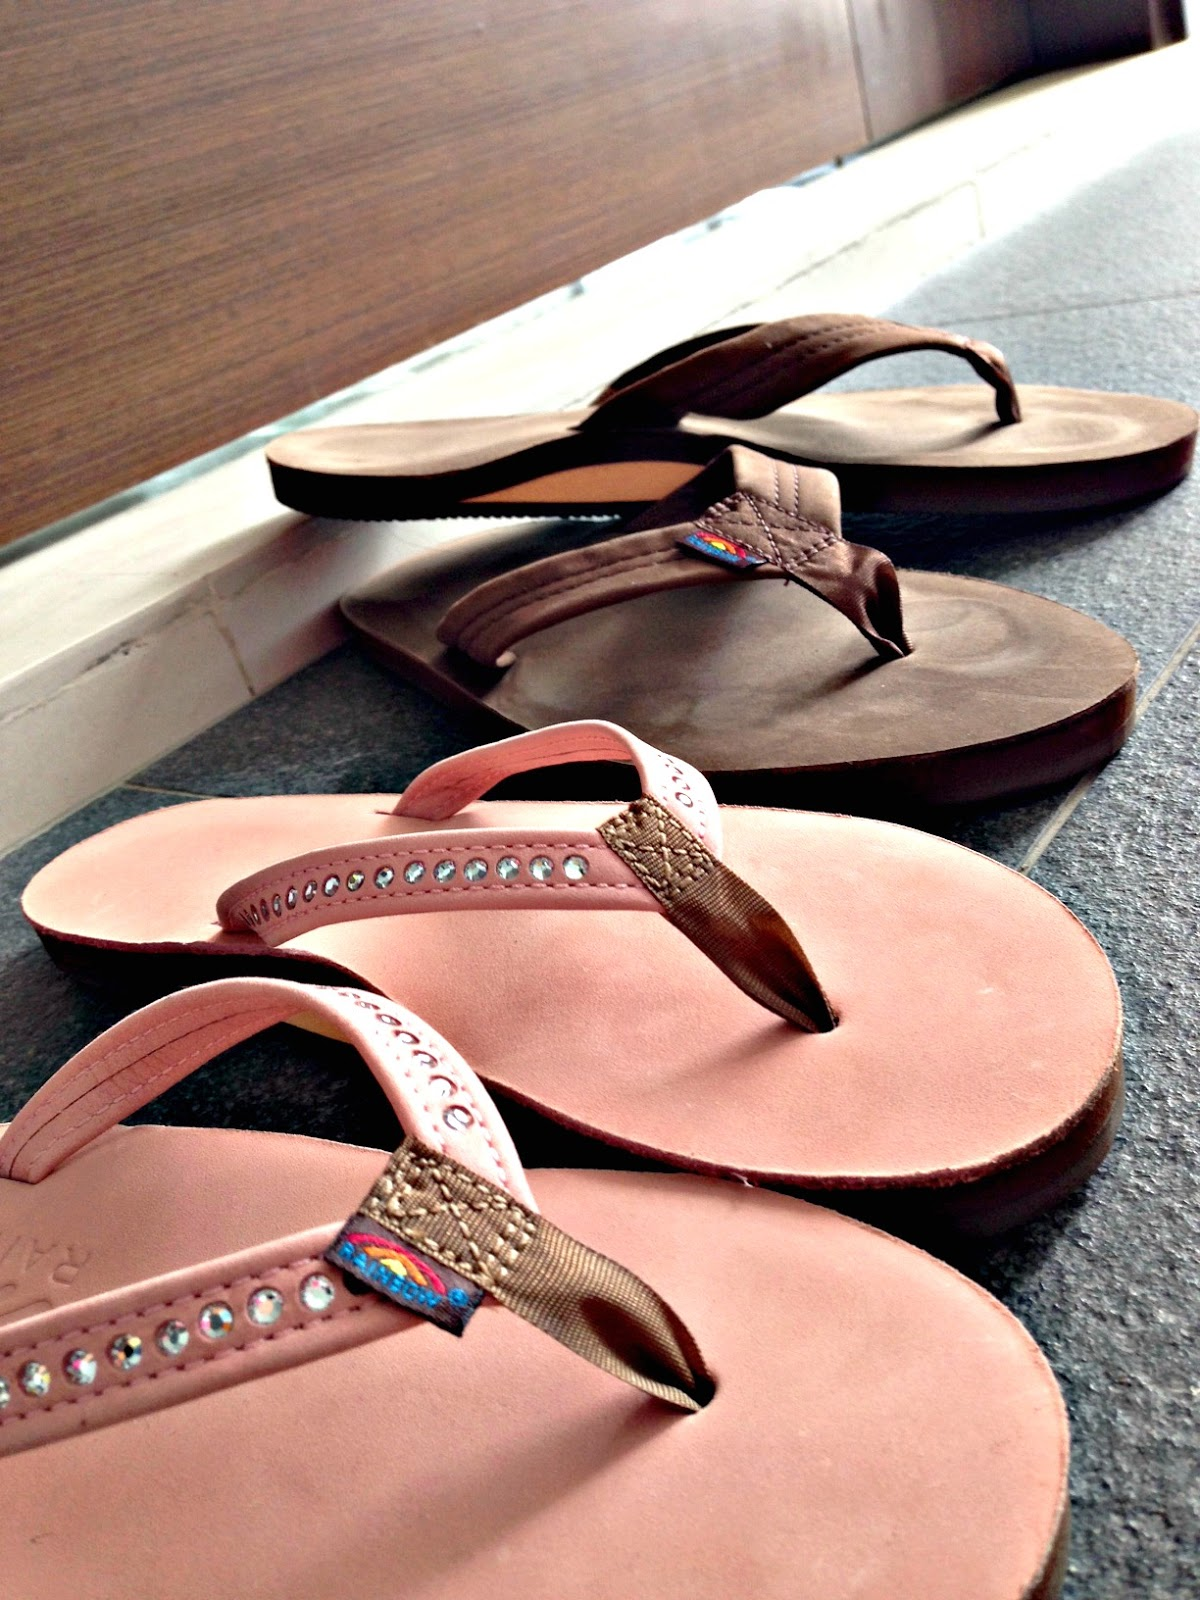 0500e10c7083 There is a memory foam layer on the sandal which molds to your foot over  time